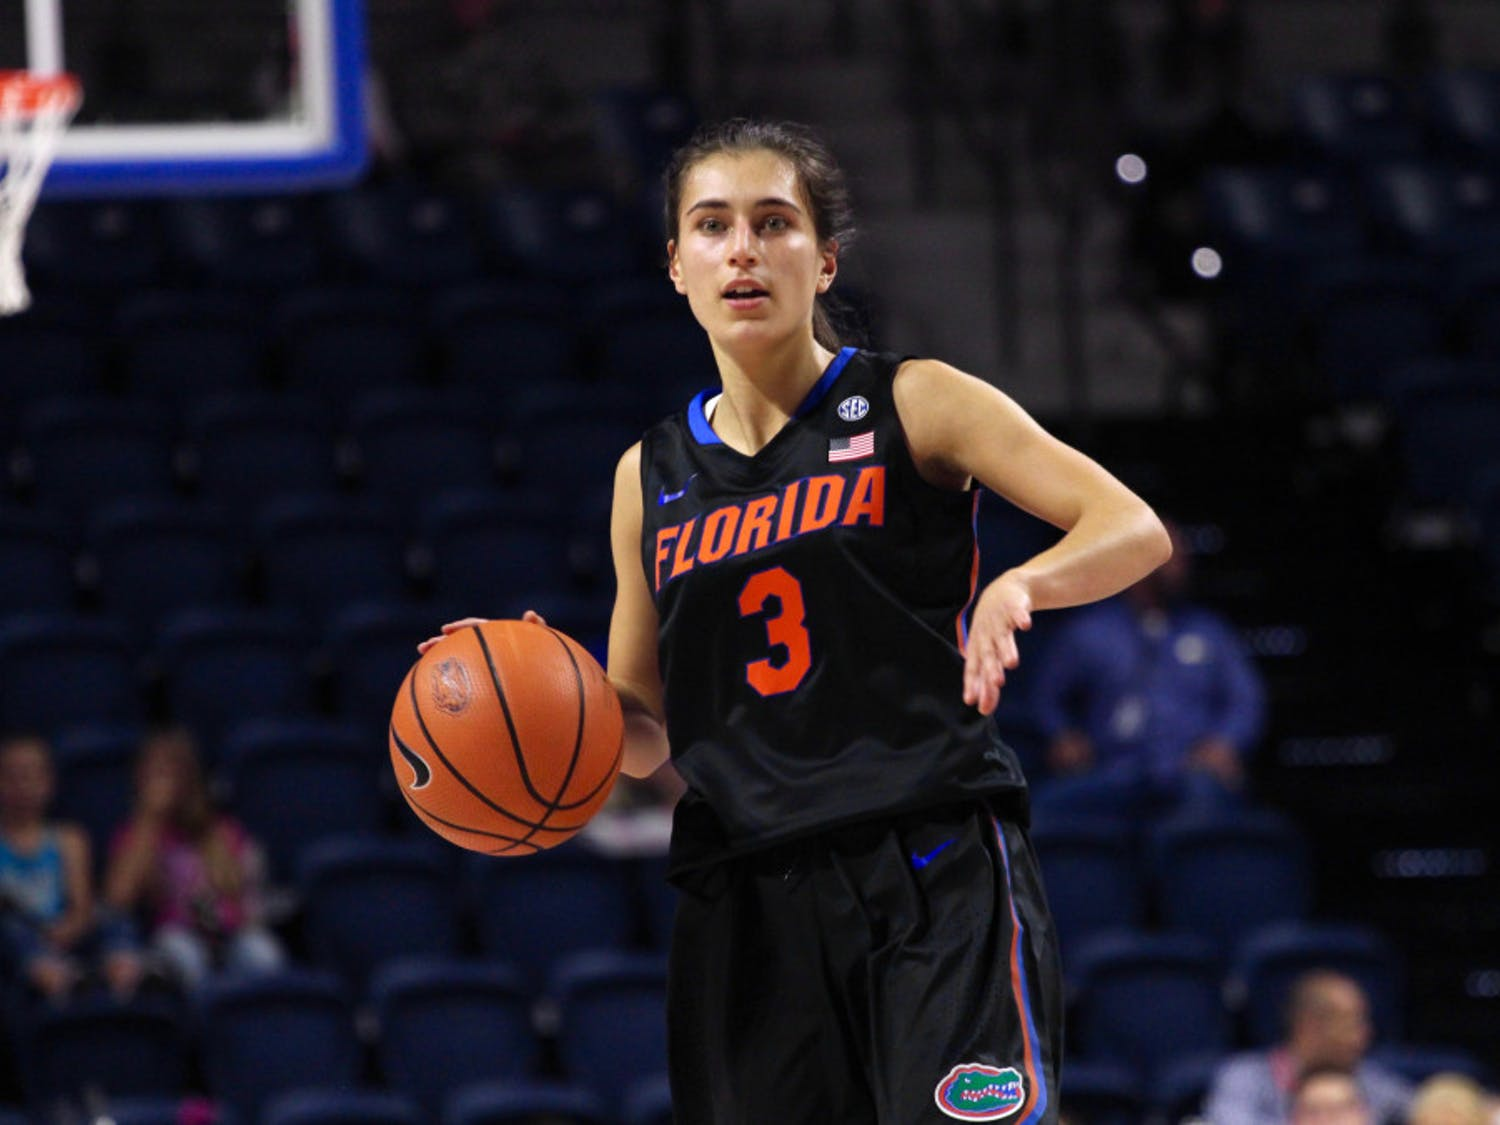 Florida guard Funda Nakkasoglu scored 17 points in Florida's 74-69 victory over Marshall on Sunday at the O'Connell Center.